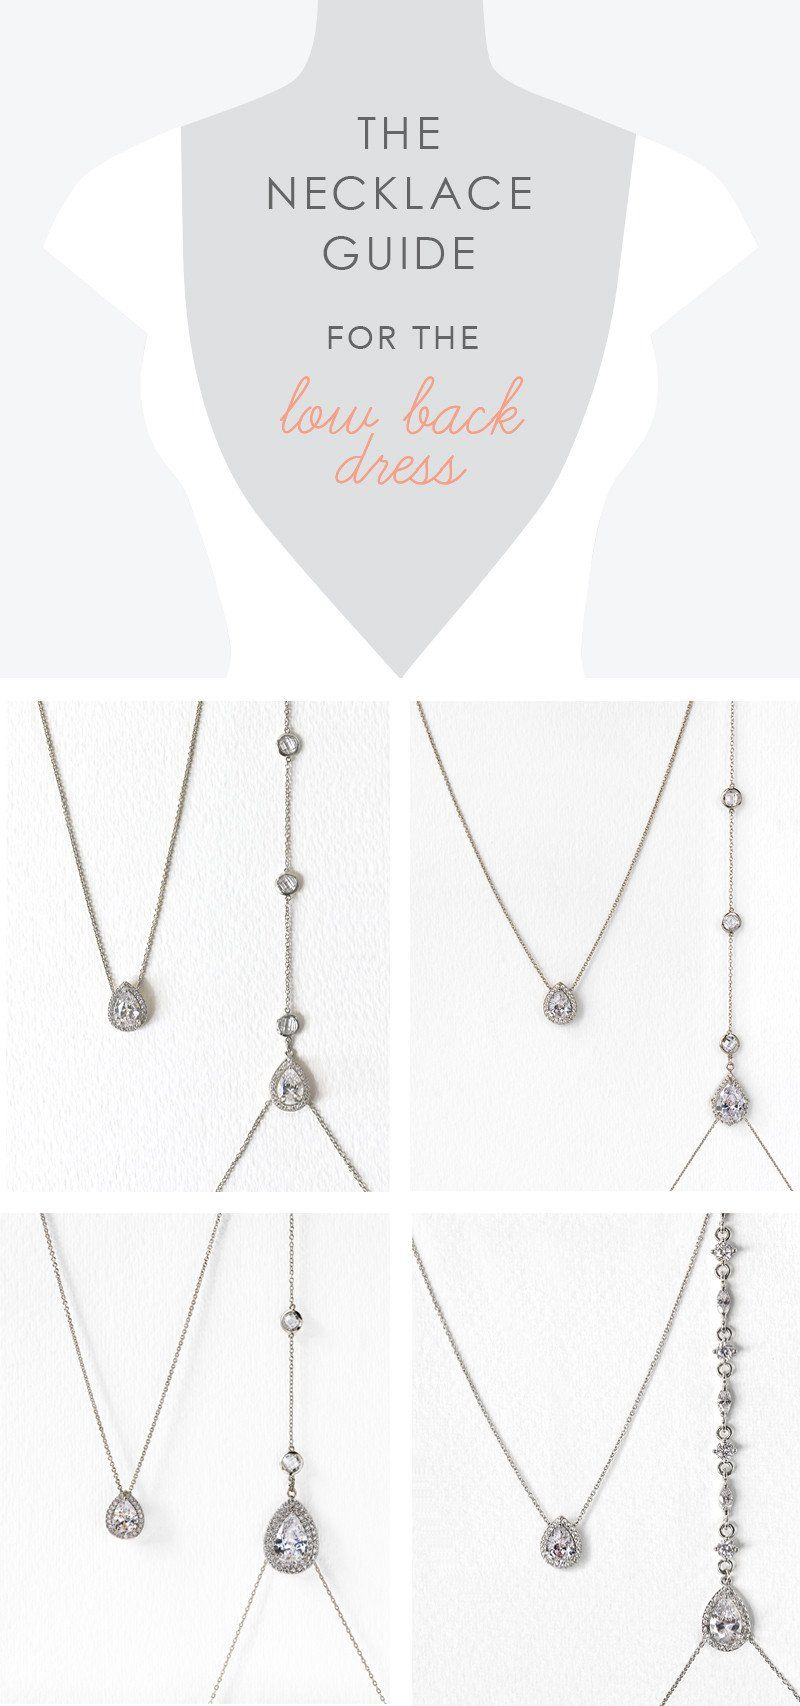 The necklace guide for the low back dress crystal glam